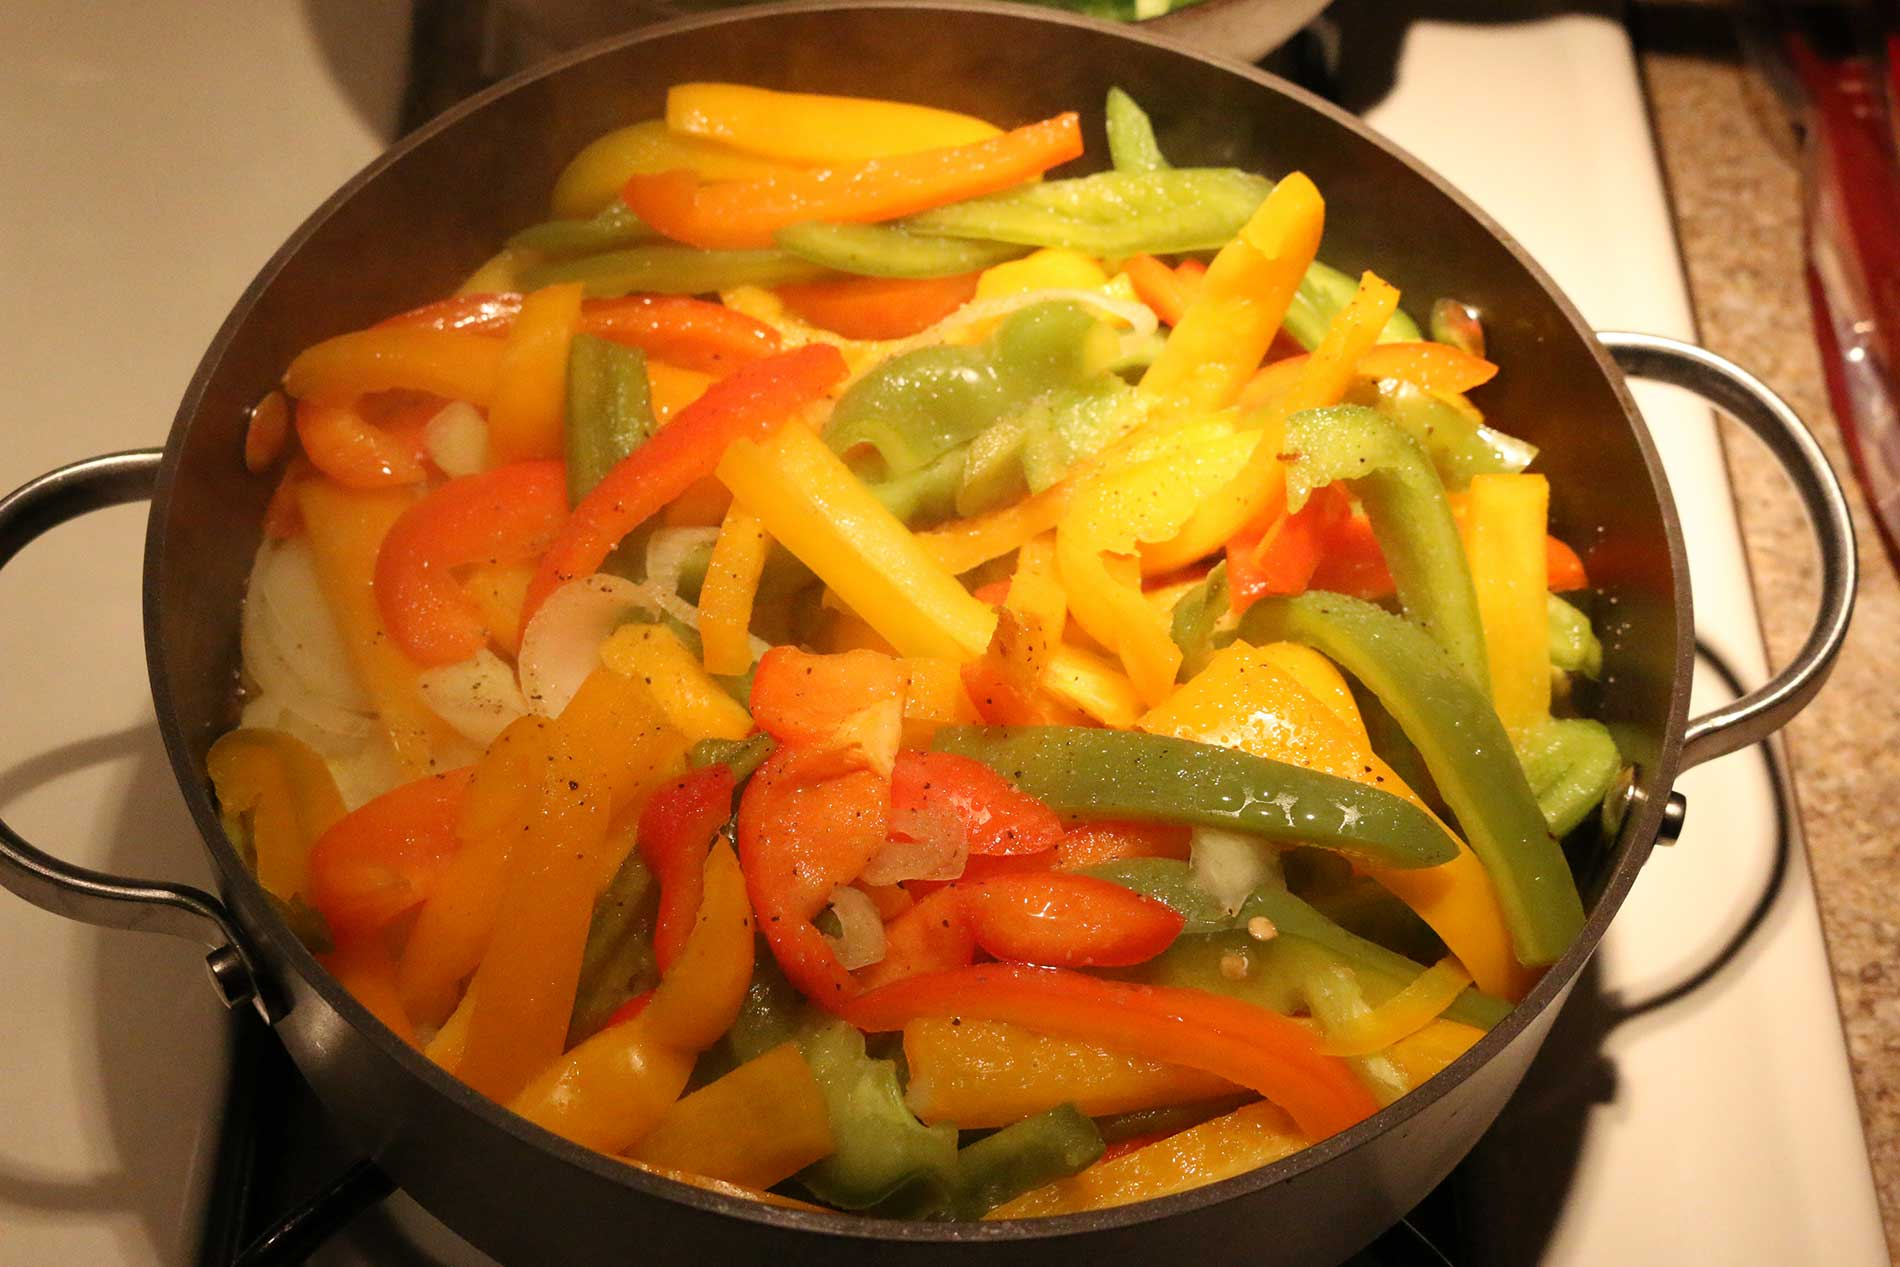 Sauteing the peppers and onions